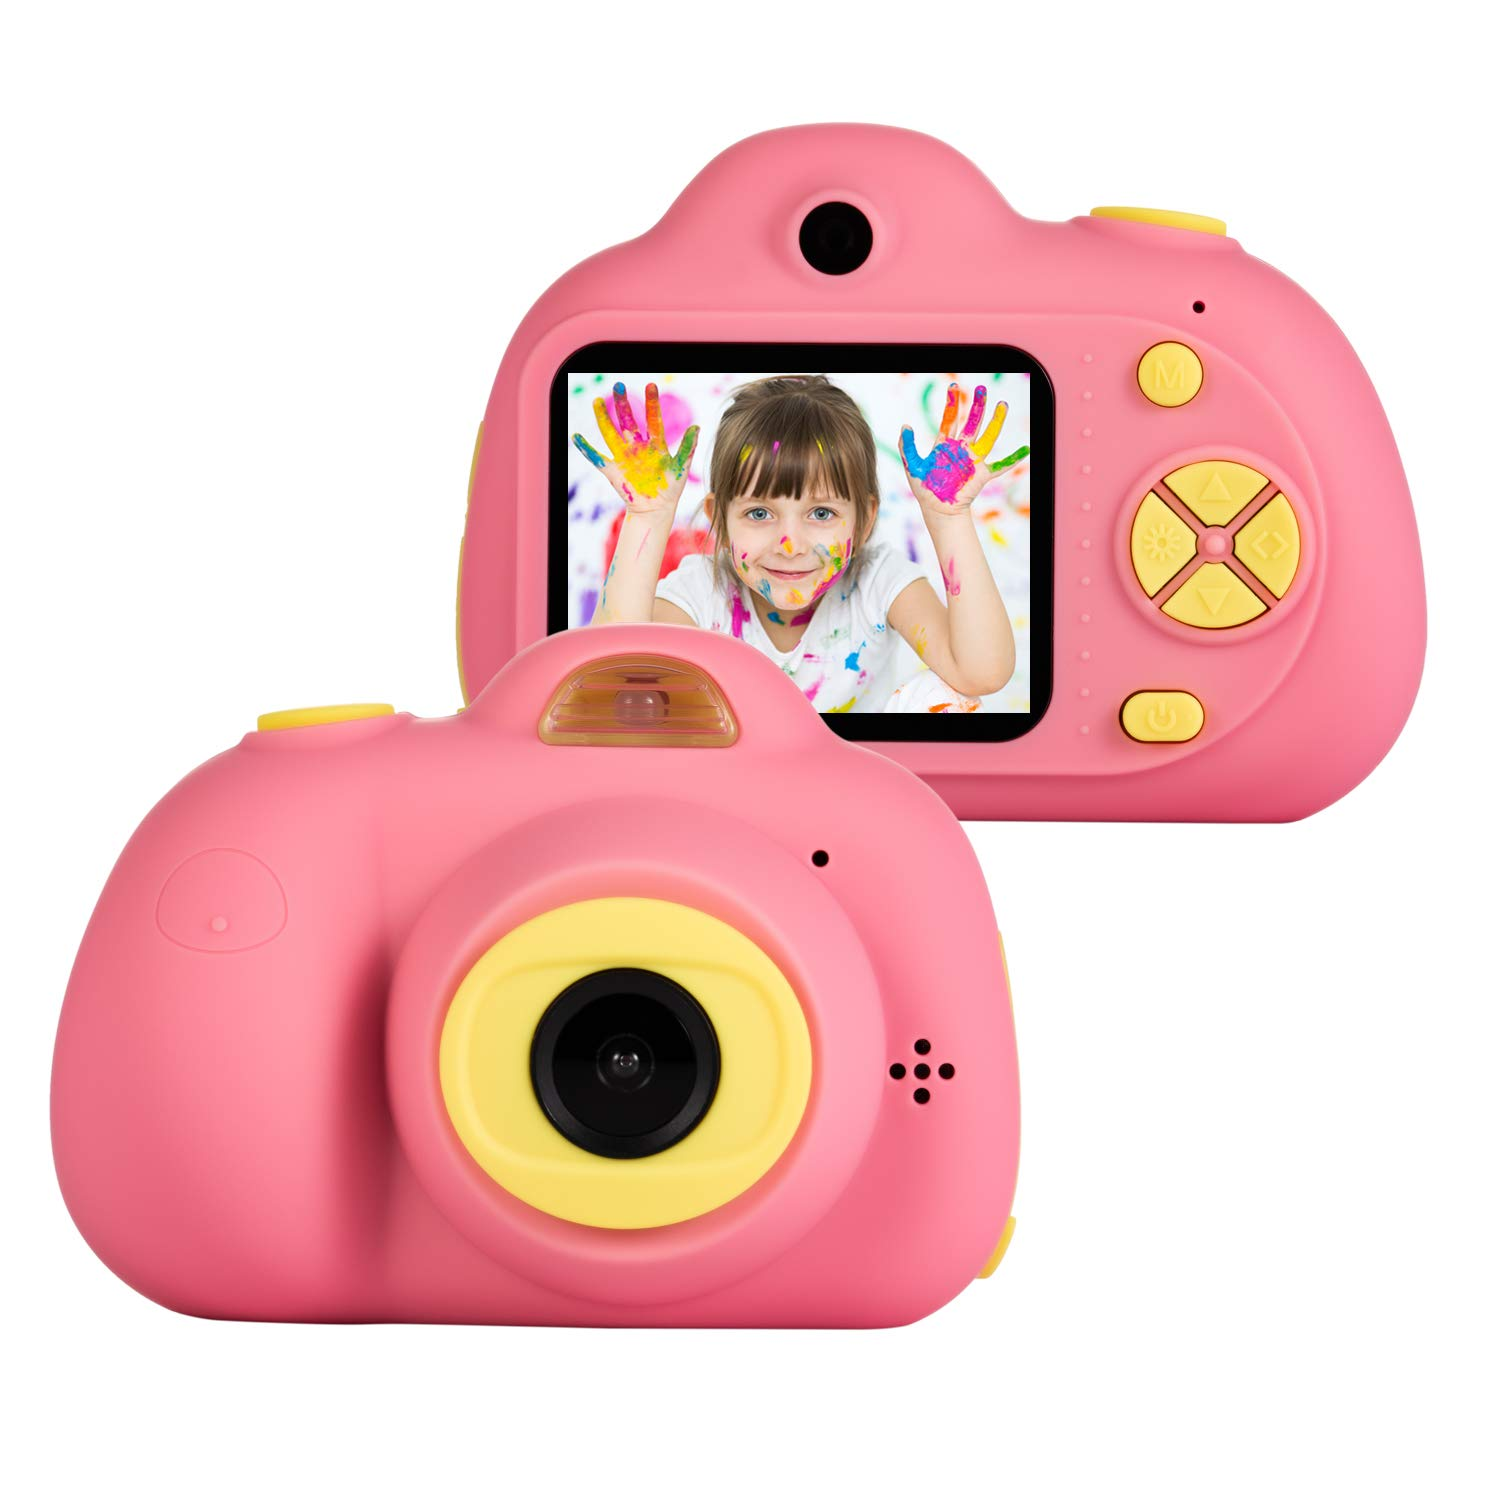 omzer Kids Camera Toys for Girls, Cute Children Cameras Mini Camcorder for 3-8 Years Old Girl with 8MP HD Video Lens Great for Shooting, Deep Pink(16GB Memory Card Included)